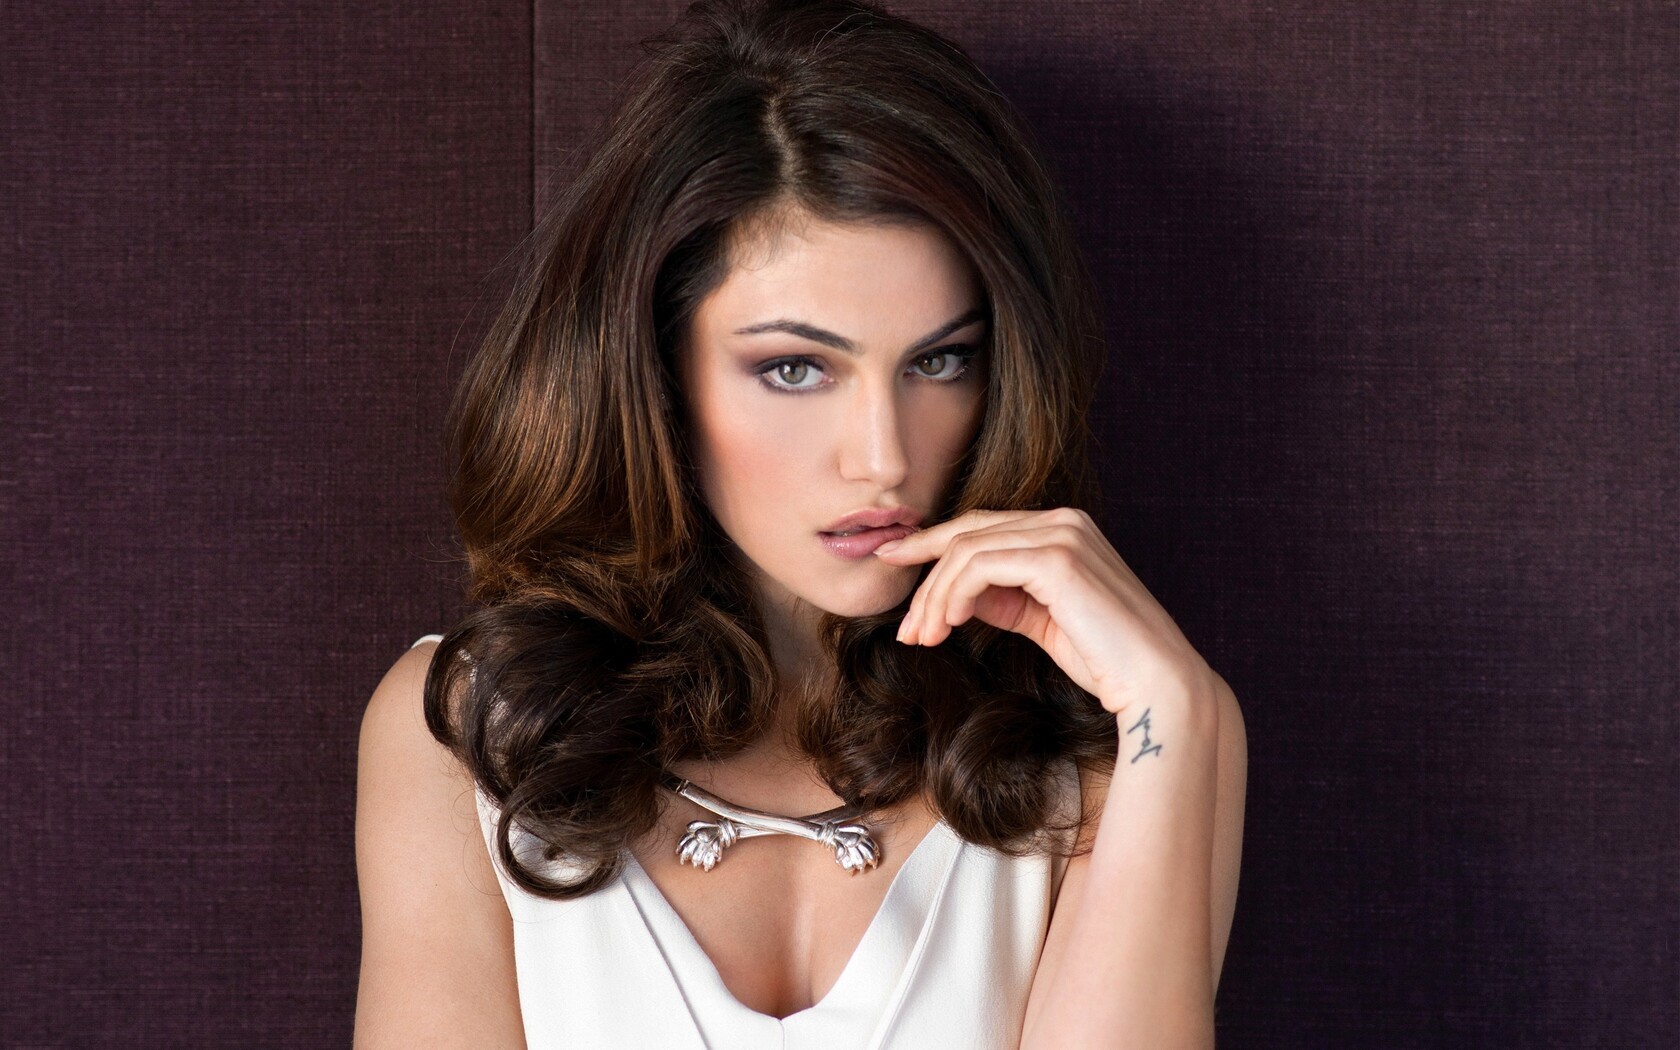 1680x1050 Phoebe Tonkin 2 1680x1050 Resolution Hd 4k